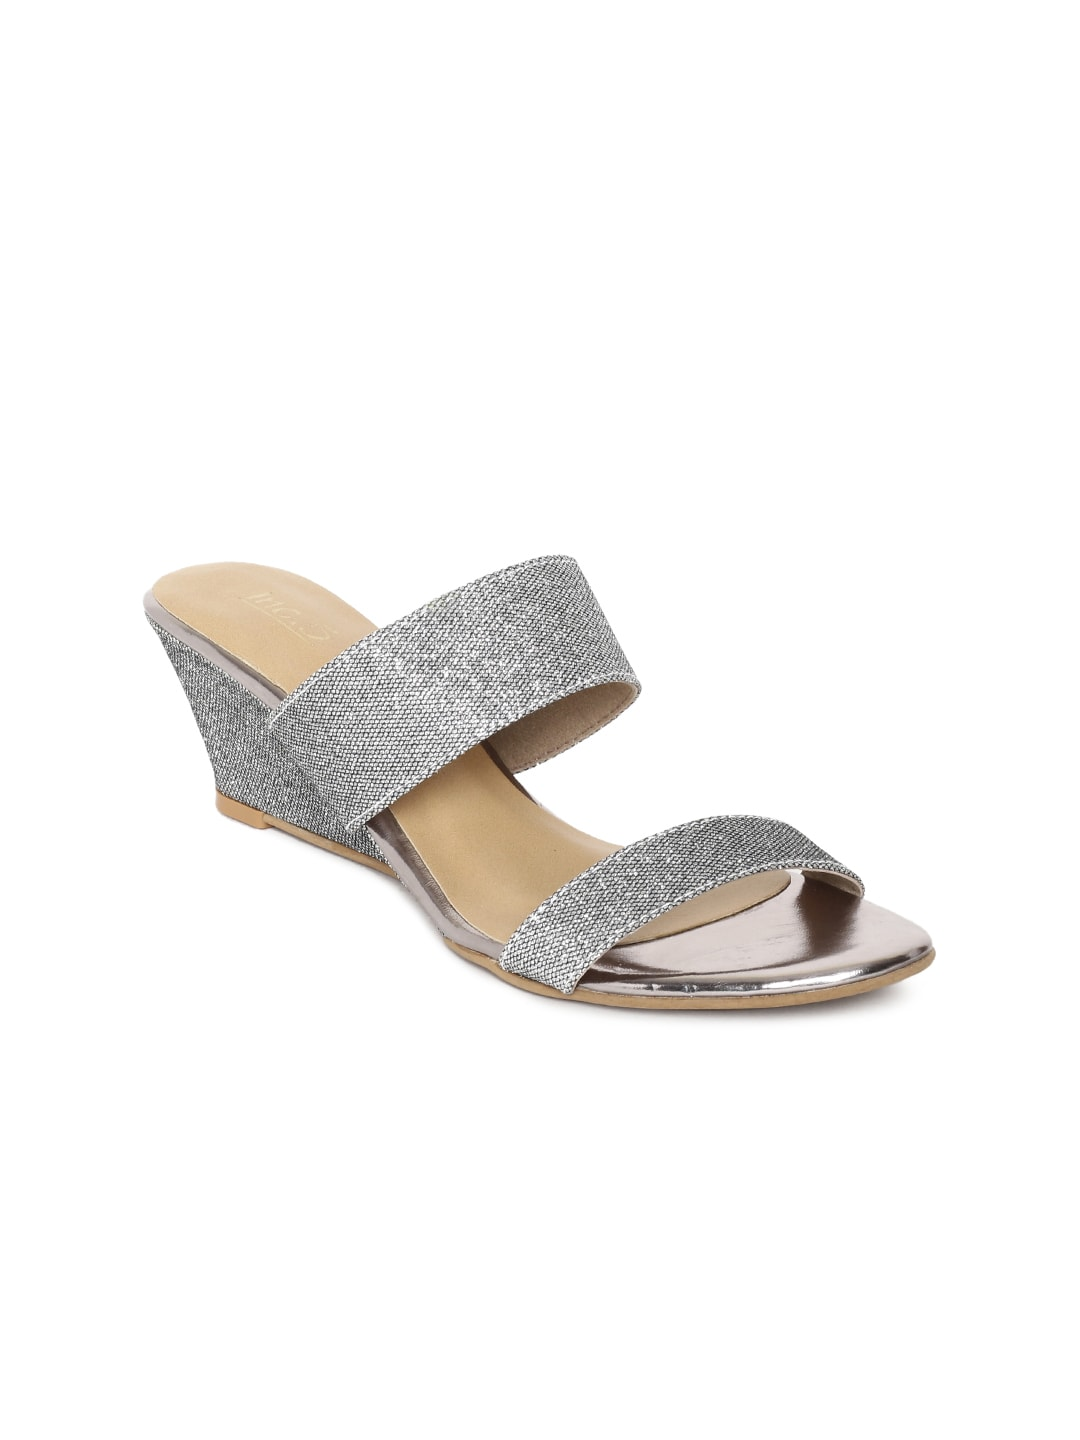 54f7813f4c5 Silver Wedges - Buy Silver Wedges online in India